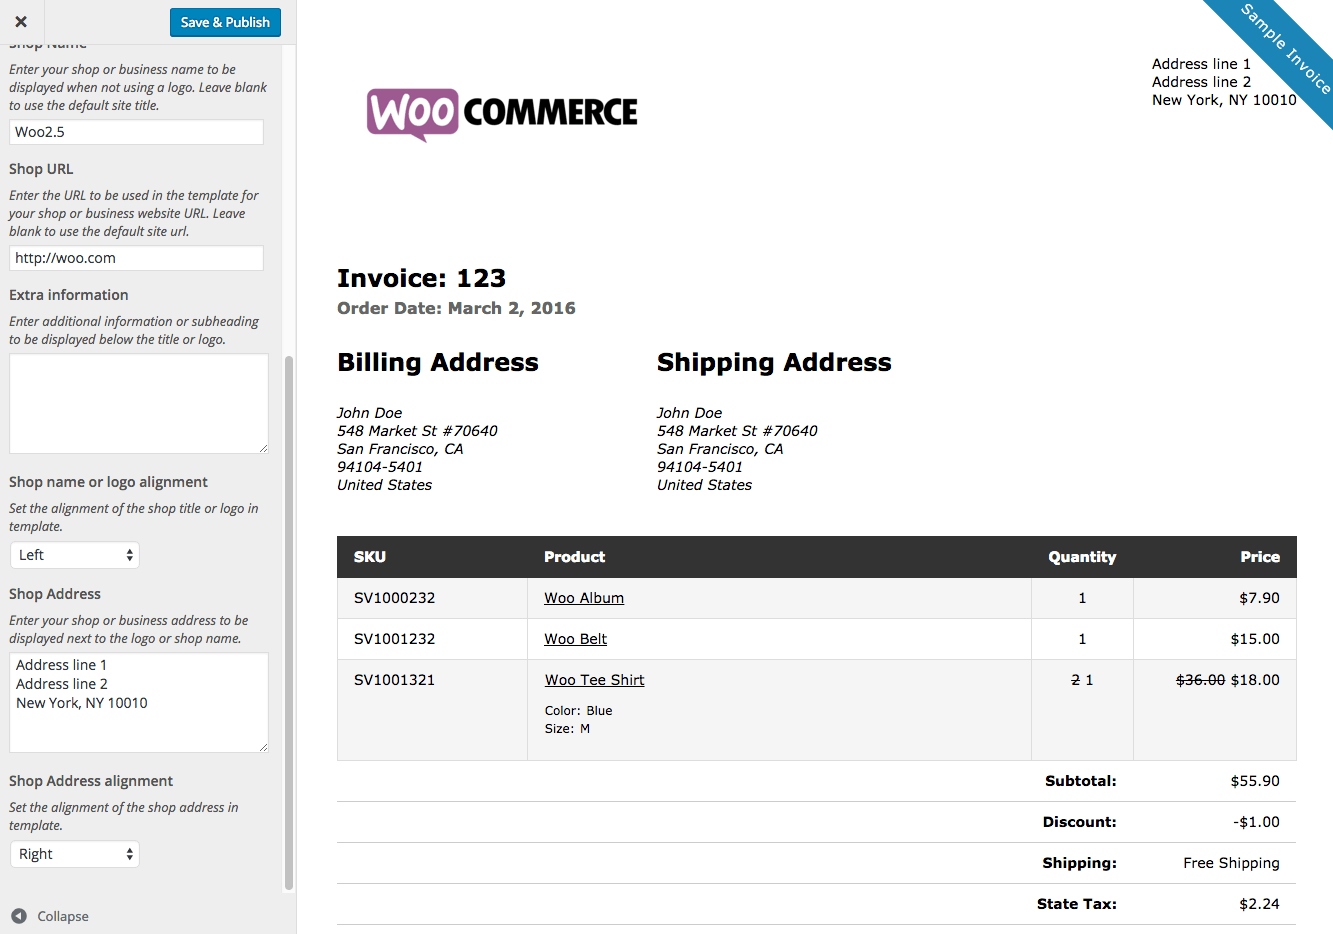 Carsforlessus  Outstanding Woocommerce Print Invoices Amp Packing Lists  Woocommerce Docs With Excellent Woocommerce Print Invoices  Packing Lists Customizer With Enchanting Warehouse Receipts Also Usmc Cif Gear Receipt In Addition Work Order Receipt And Subrogation Receipt As Well As Gift Card Receipt Additionally Usps Delivery Receipt From Docswoocommercecom With Carsforlessus  Excellent Woocommerce Print Invoices Amp Packing Lists  Woocommerce Docs With Enchanting Woocommerce Print Invoices  Packing Lists Customizer And Outstanding Warehouse Receipts Also Usmc Cif Gear Receipt In Addition Work Order Receipt From Docswoocommercecom